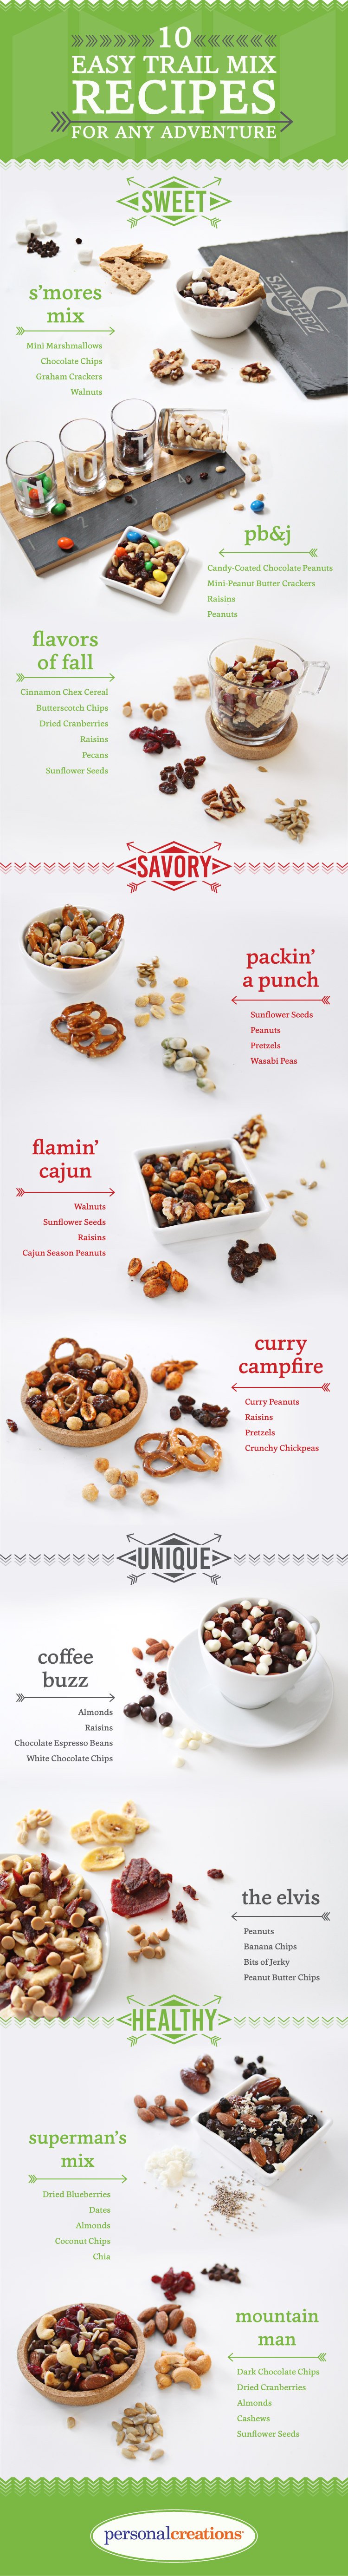 10 Fast and Easy Trail Mix Ideas